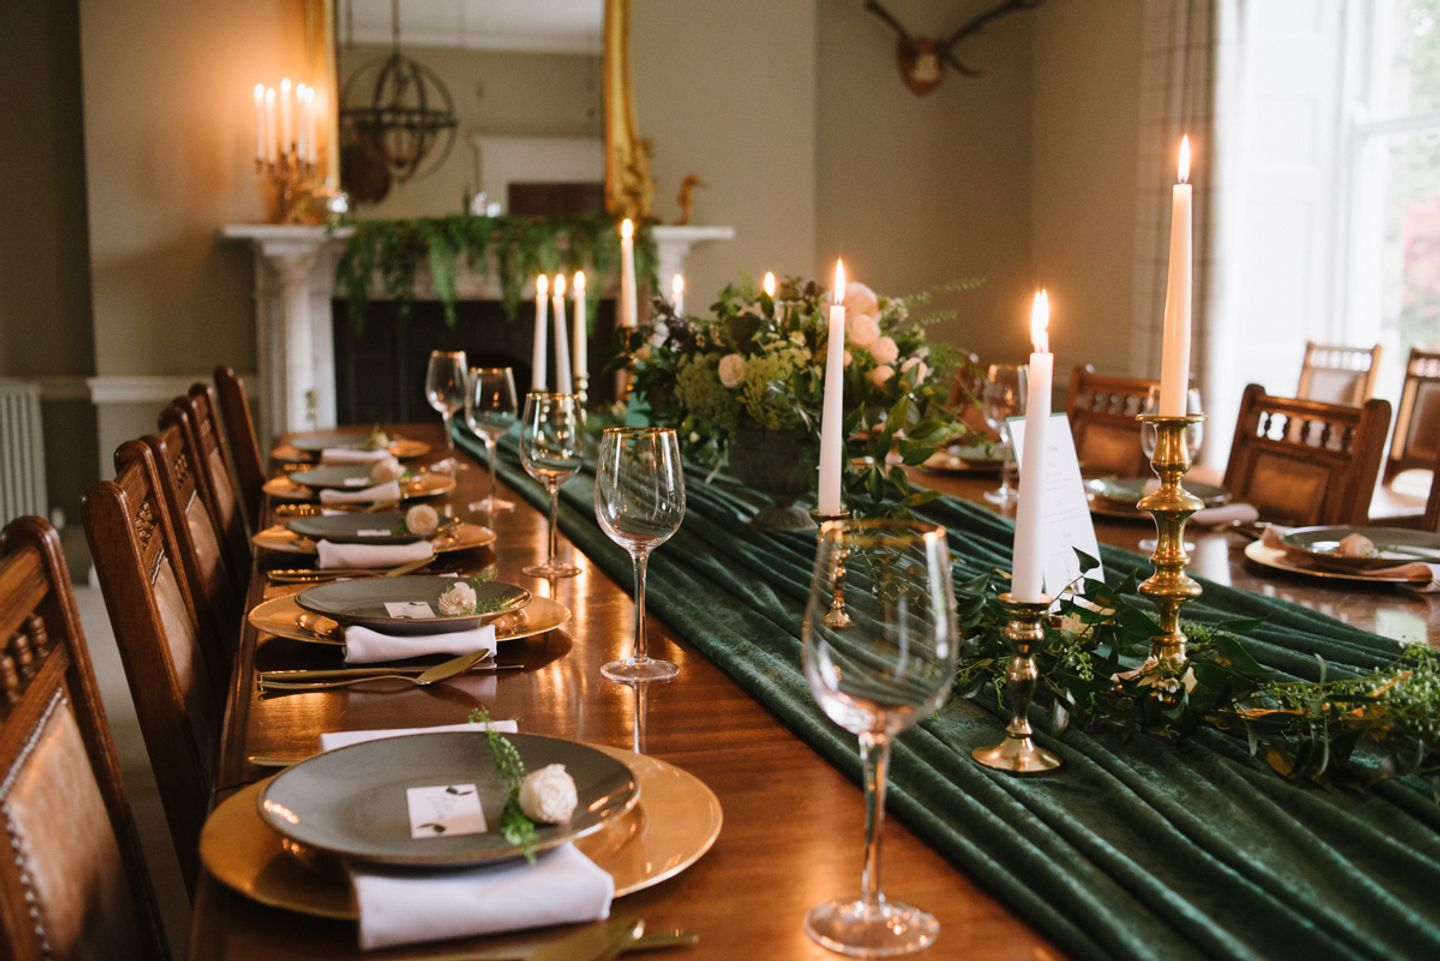 Country House intimate candle lit wedding breakfast table decorations